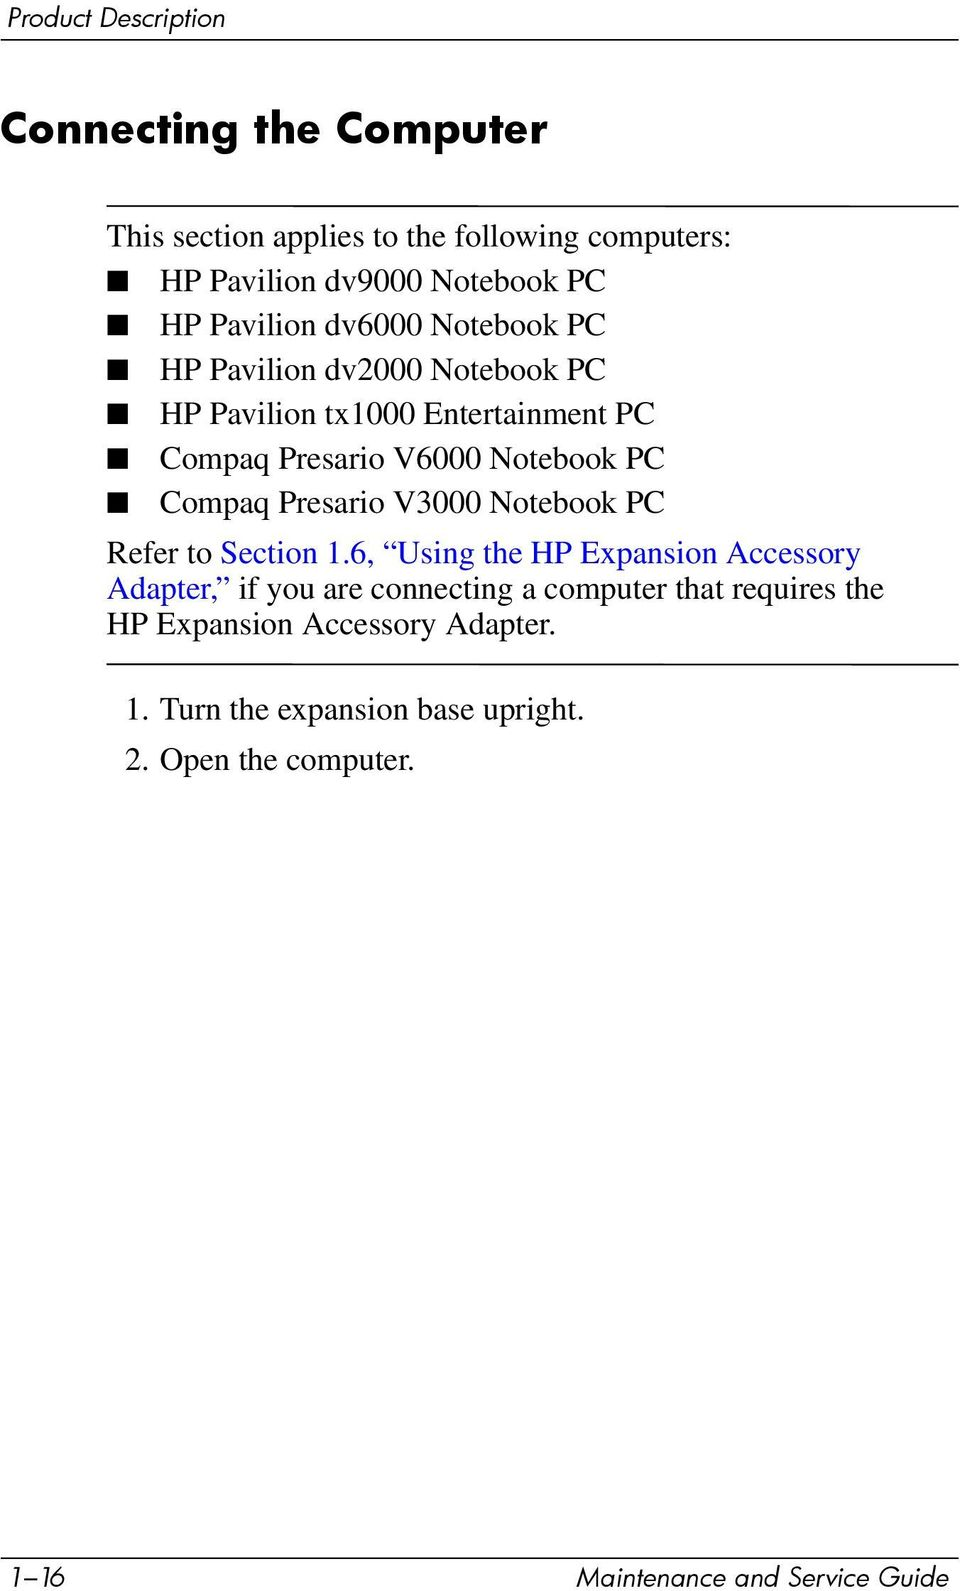 Compaq Presario V3000 Notebook PC Refer to Section 1.